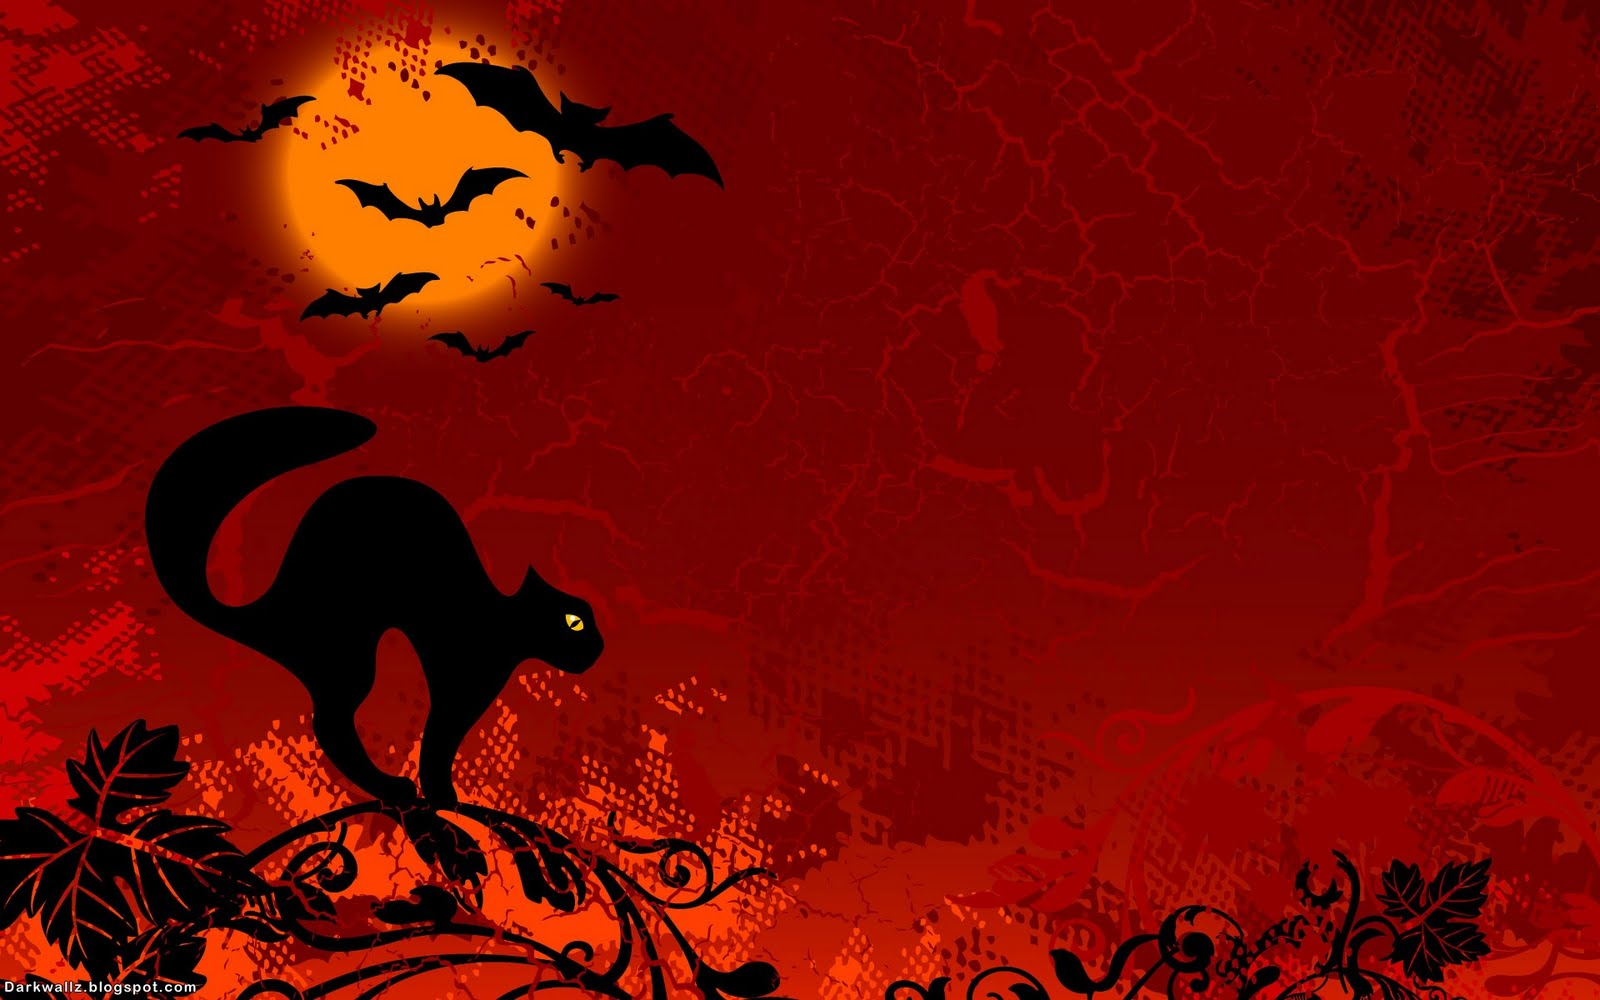 Halloween Wallpapers 31 | Dark Wallpaper Download